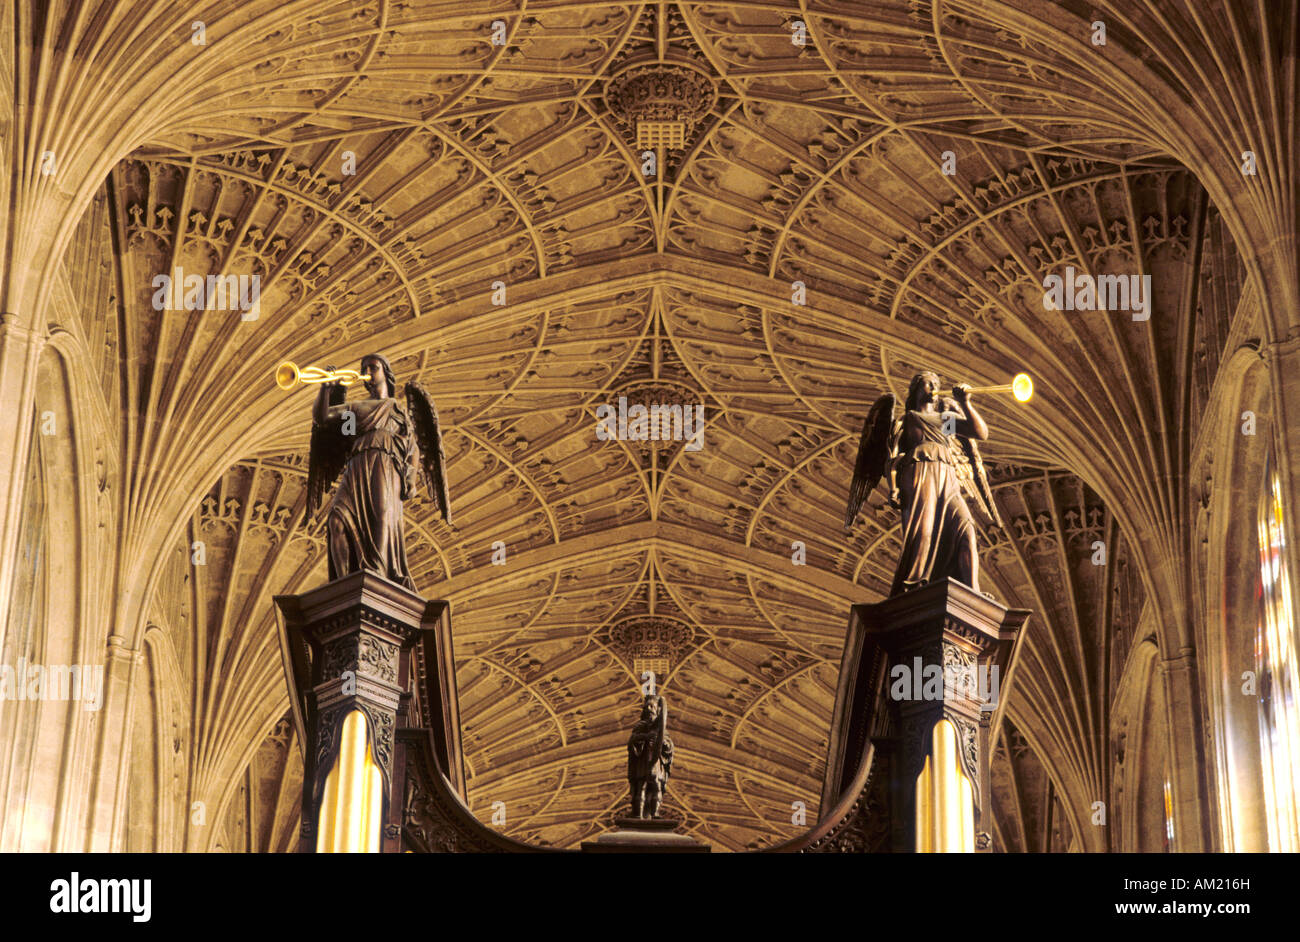 Kings College Chapel Cambridge fan vault 3 - Stock Image